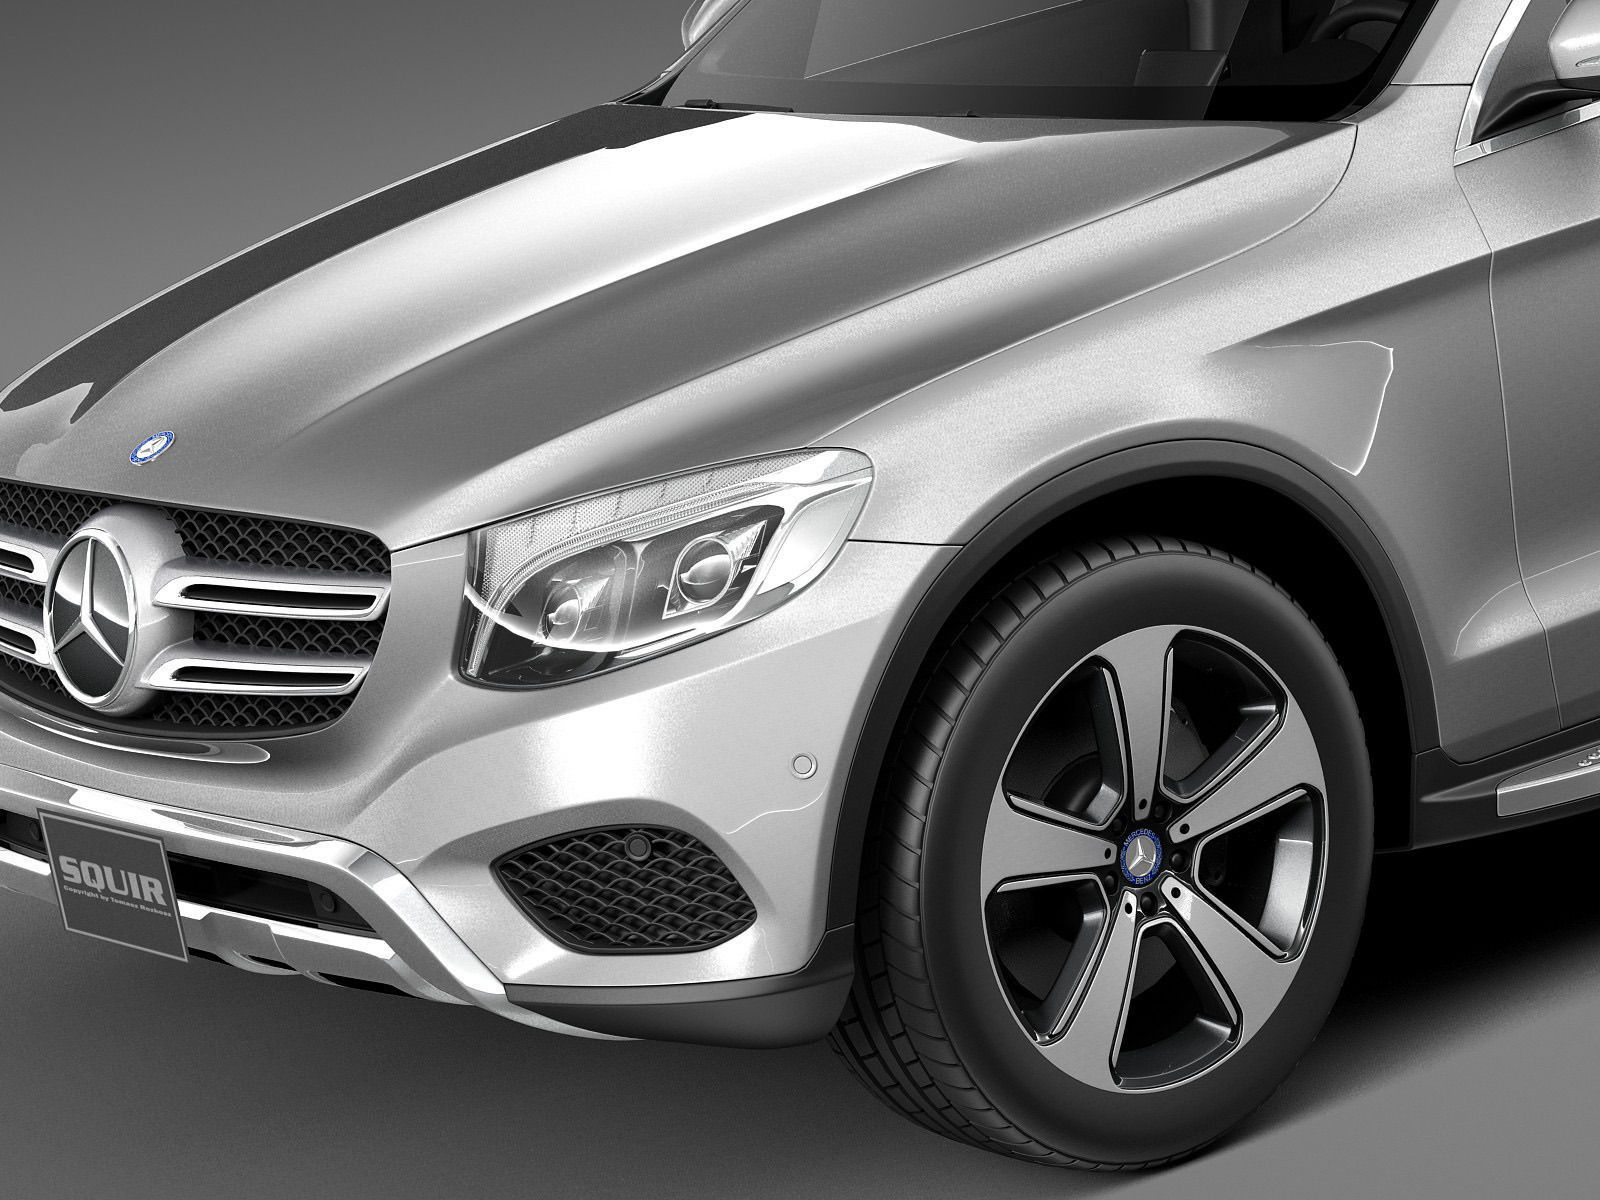 Mercedes benz glc 2016 3d model max obj 3ds fbx c4d lwo lw for 2014 mercedes benz glc